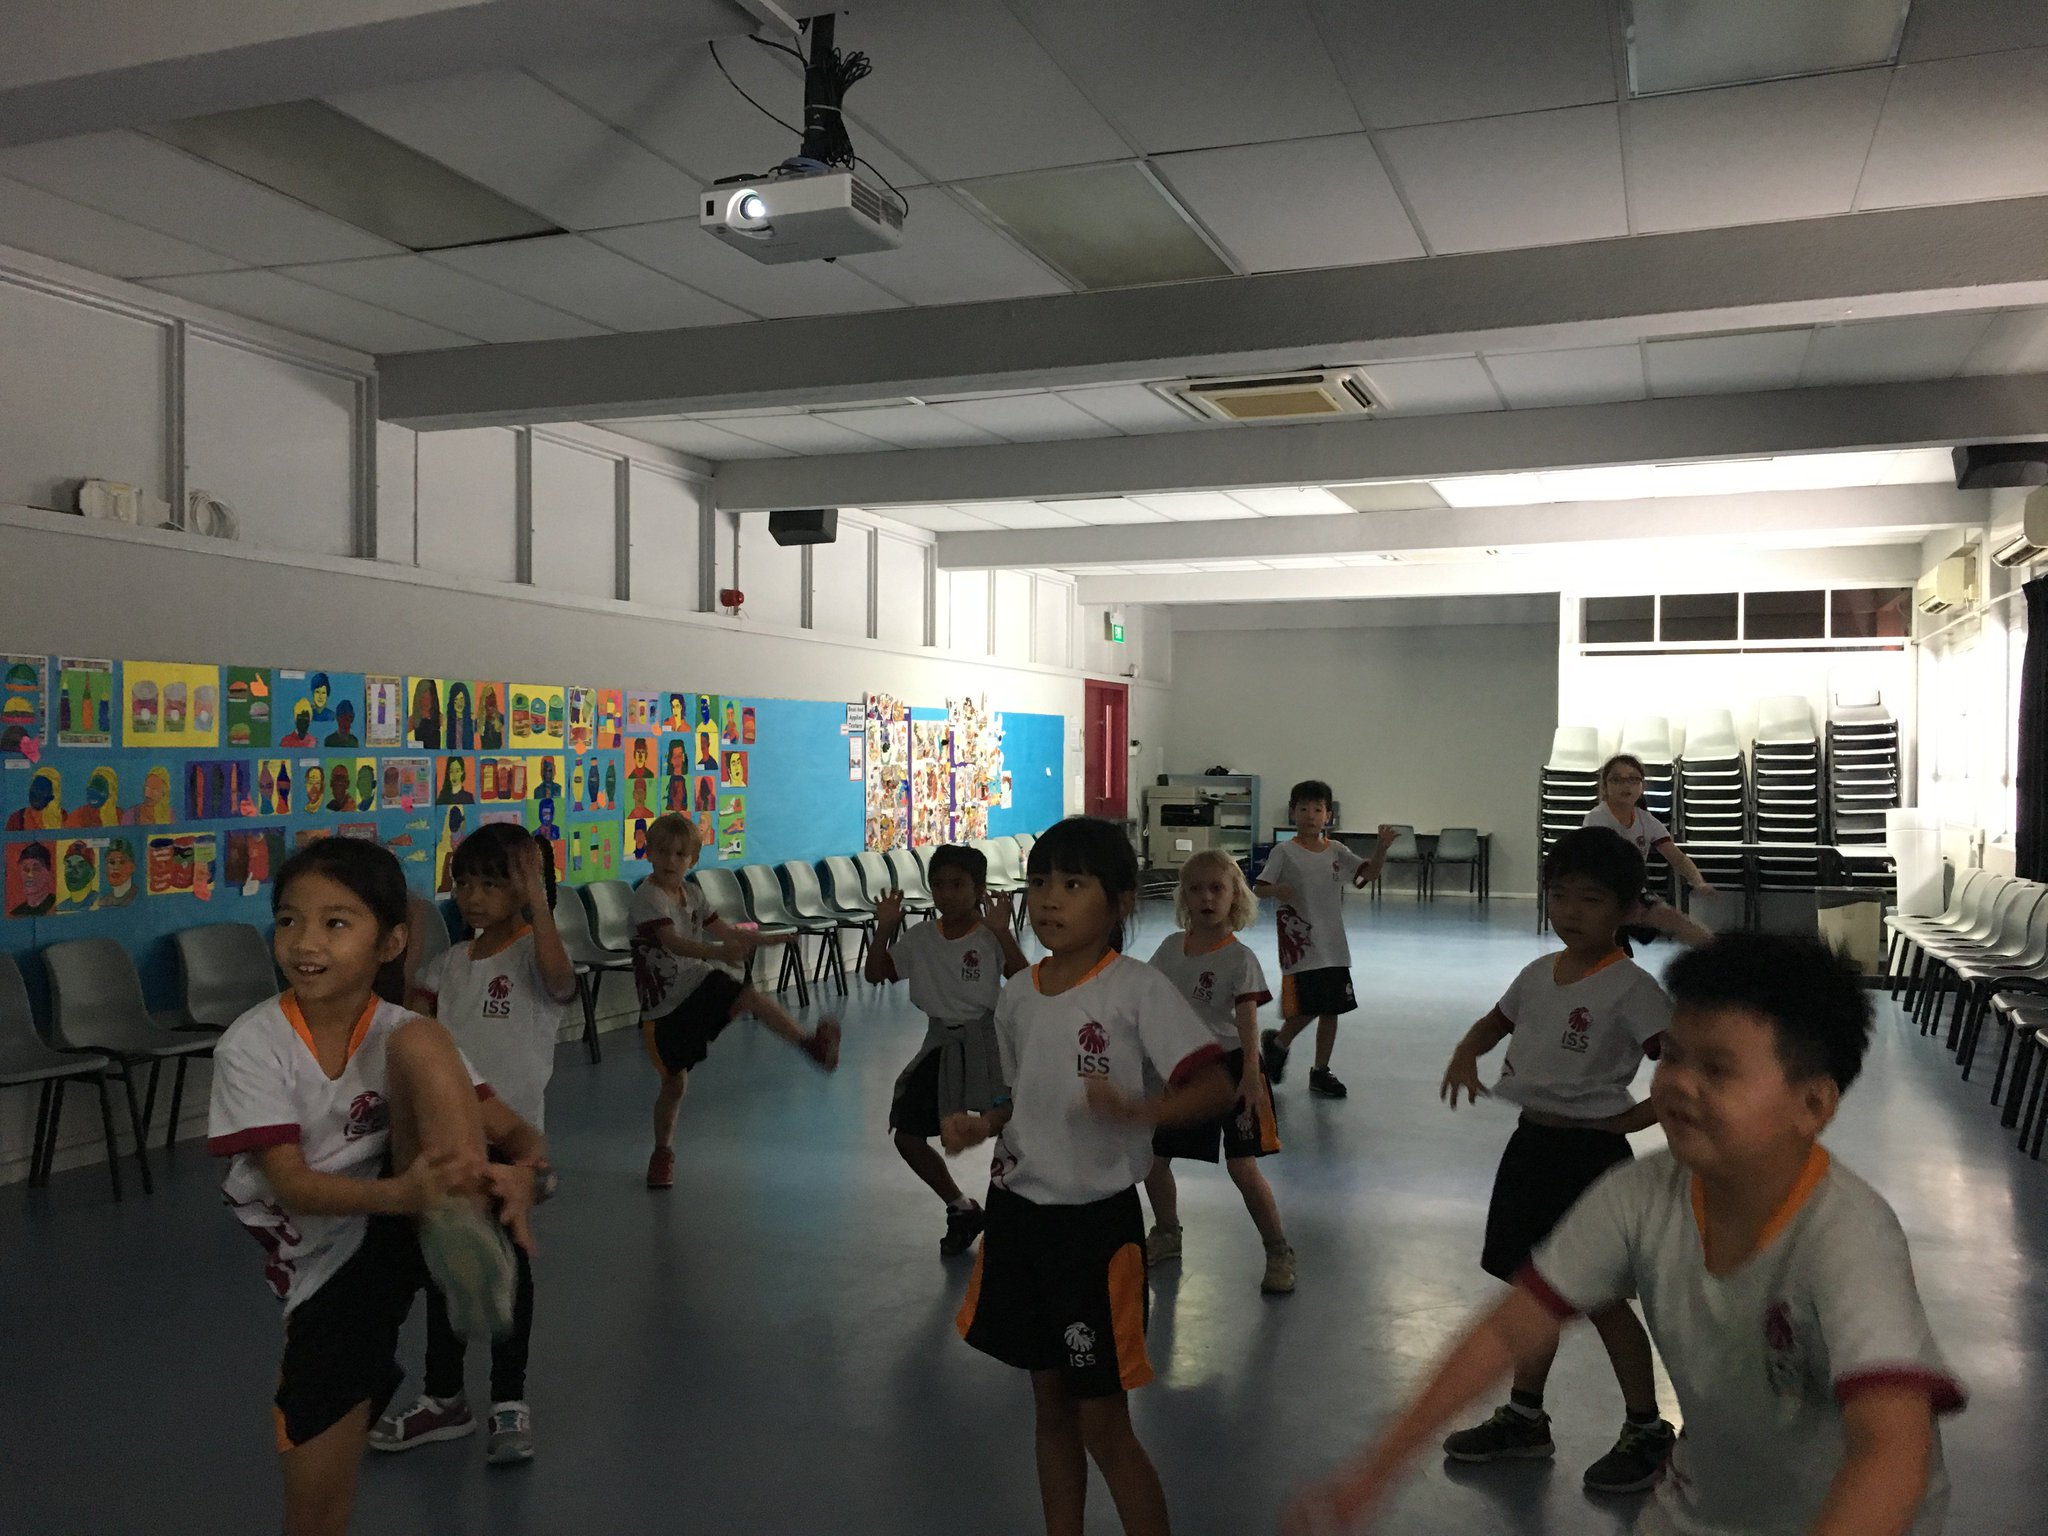 @ISSG22  Exploring the first two elements of dance - body and action #isspride https://t.co/ZY9wefIJSU